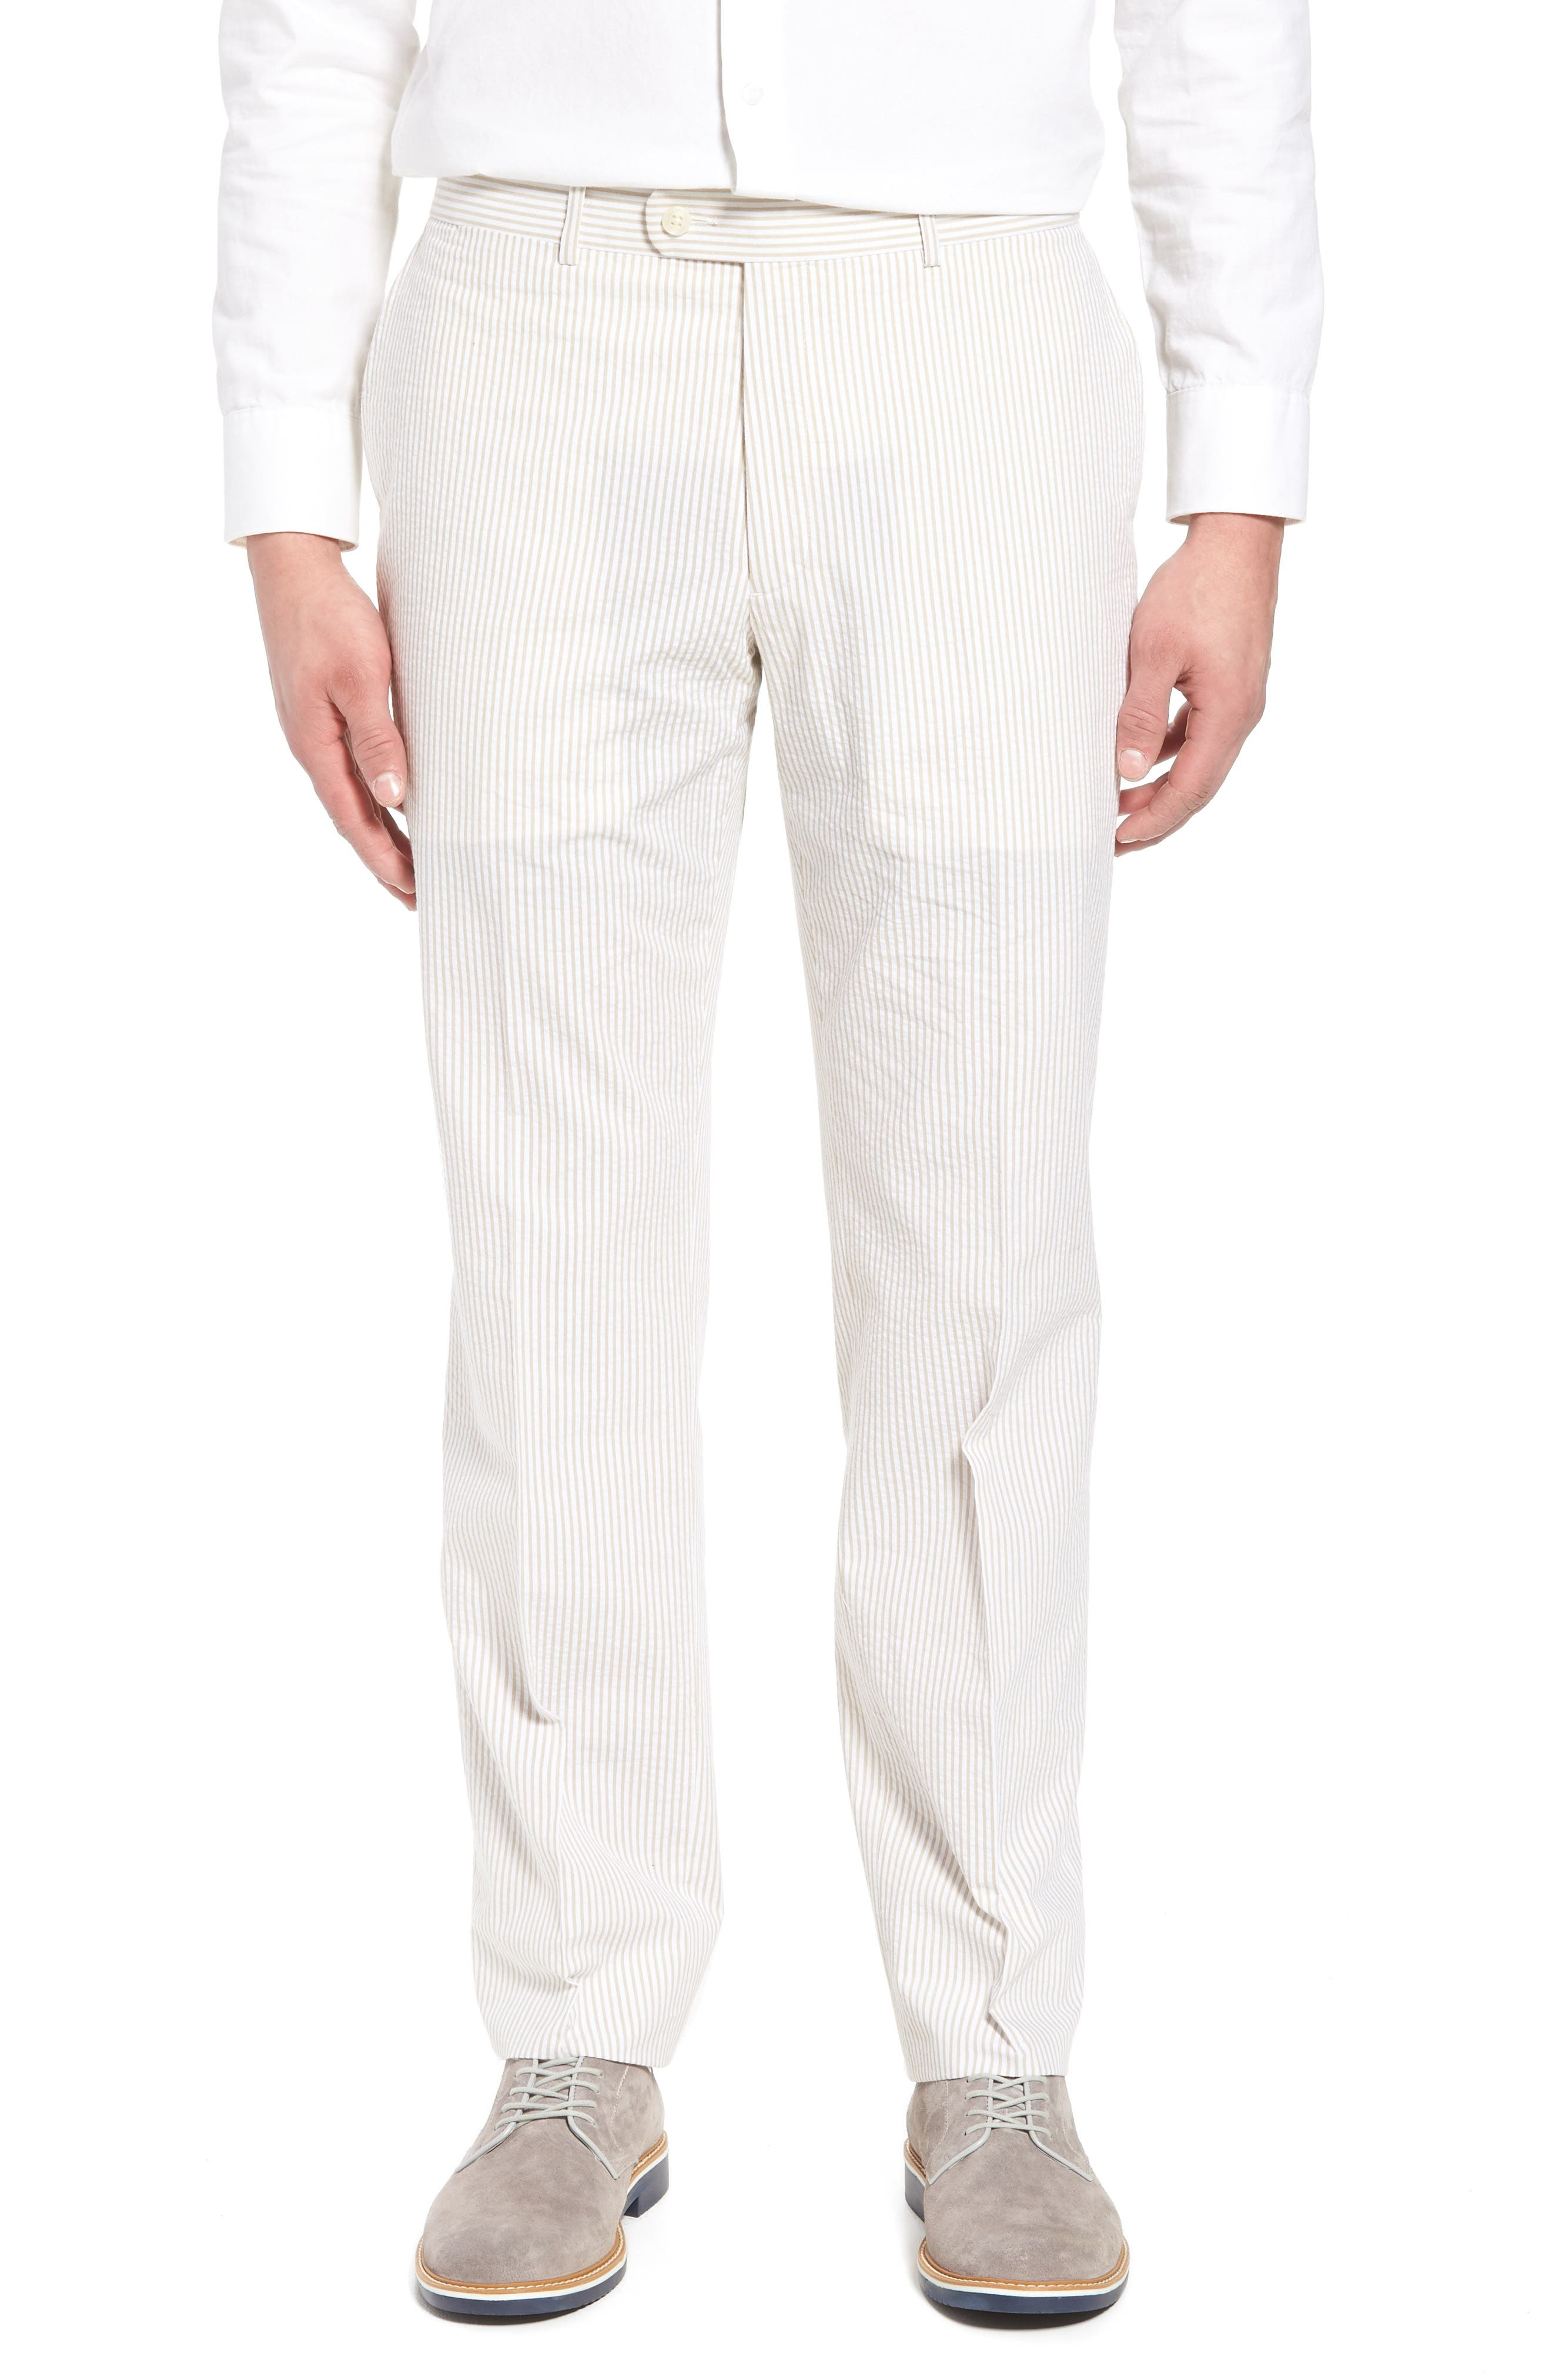 Andrew AIM Flat Front Seersucker Trousers,                             Main thumbnail 1, color,                             250